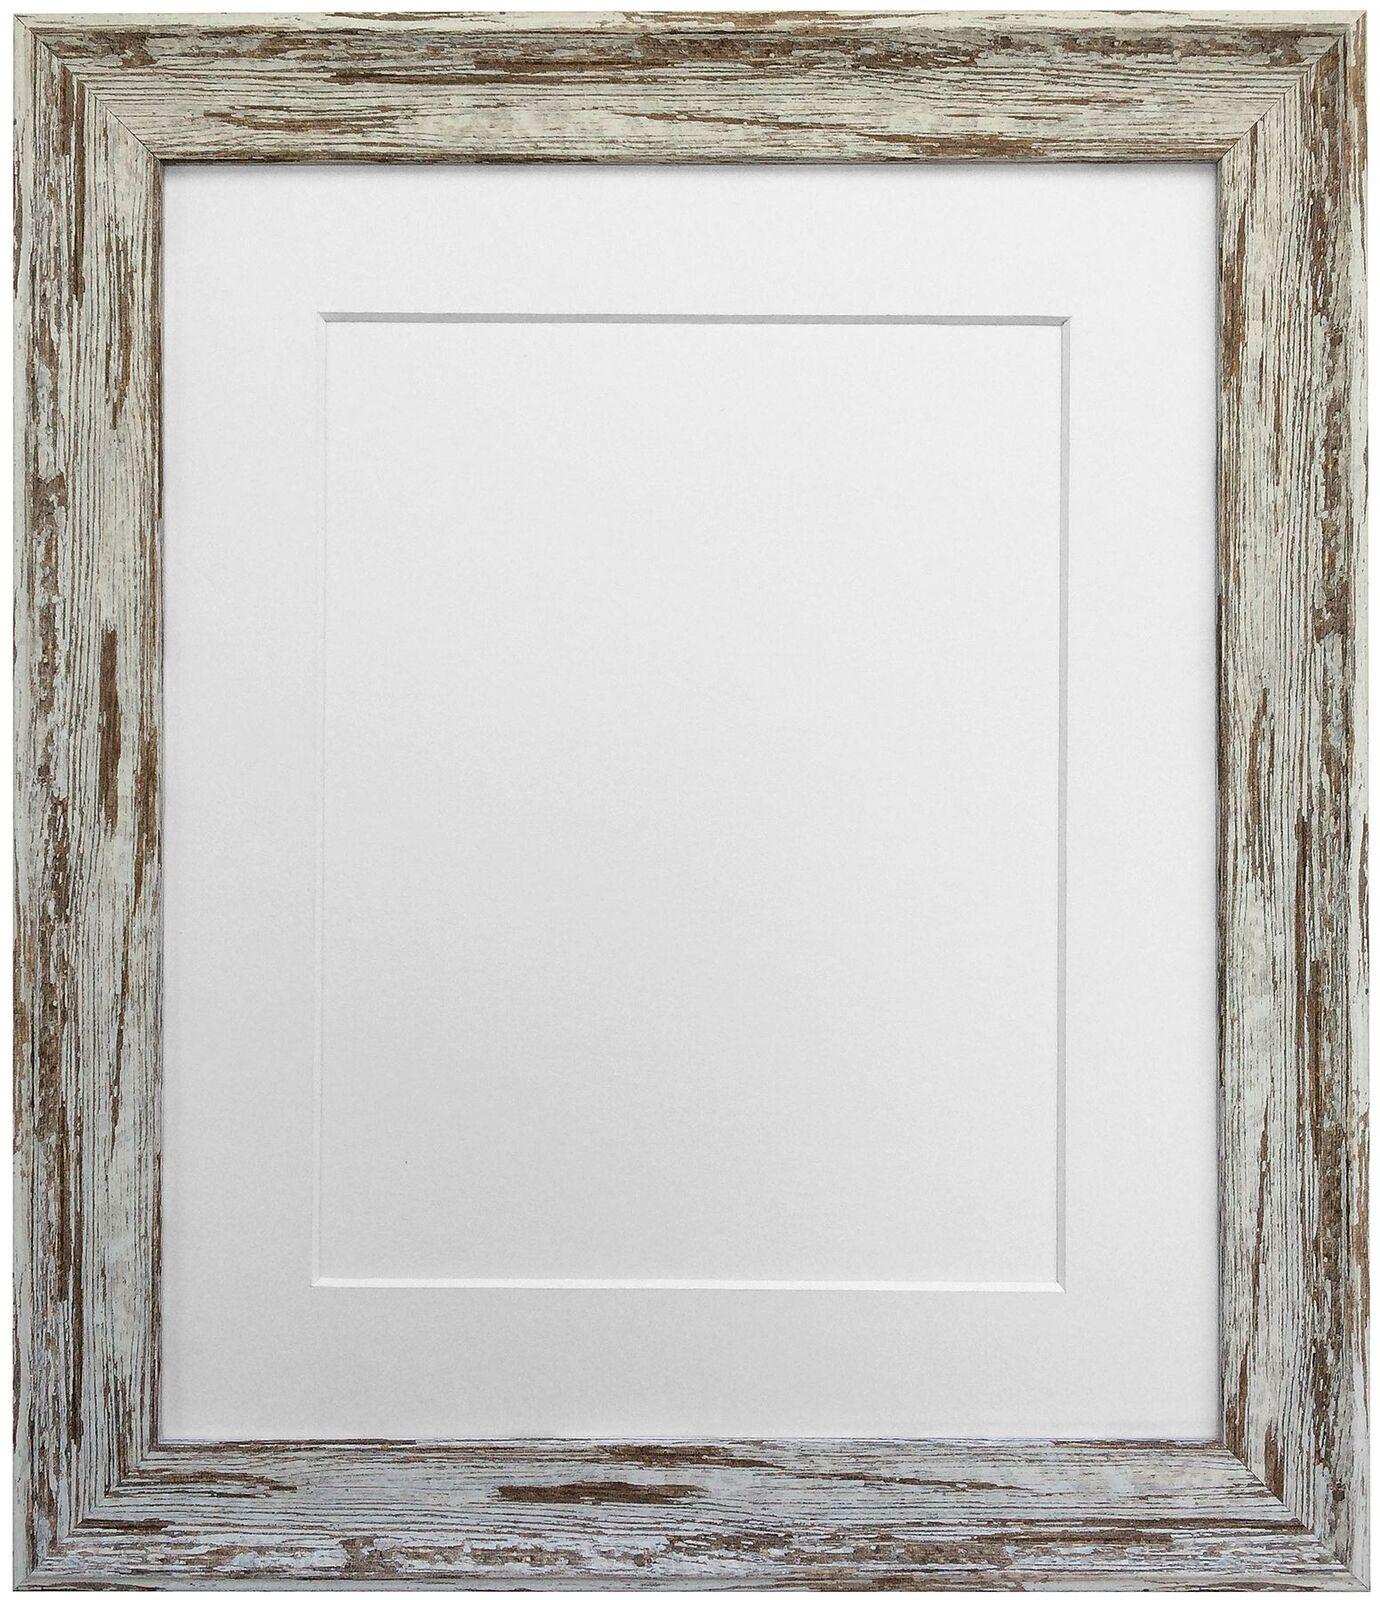 """Washed green picture photo frame 6/""""x4/"""" 7/""""x5/"""" 8/""""x6/"""" 10/""""x8/"""" 12/""""x10/"""" 14/""""x11/"""" A4"""